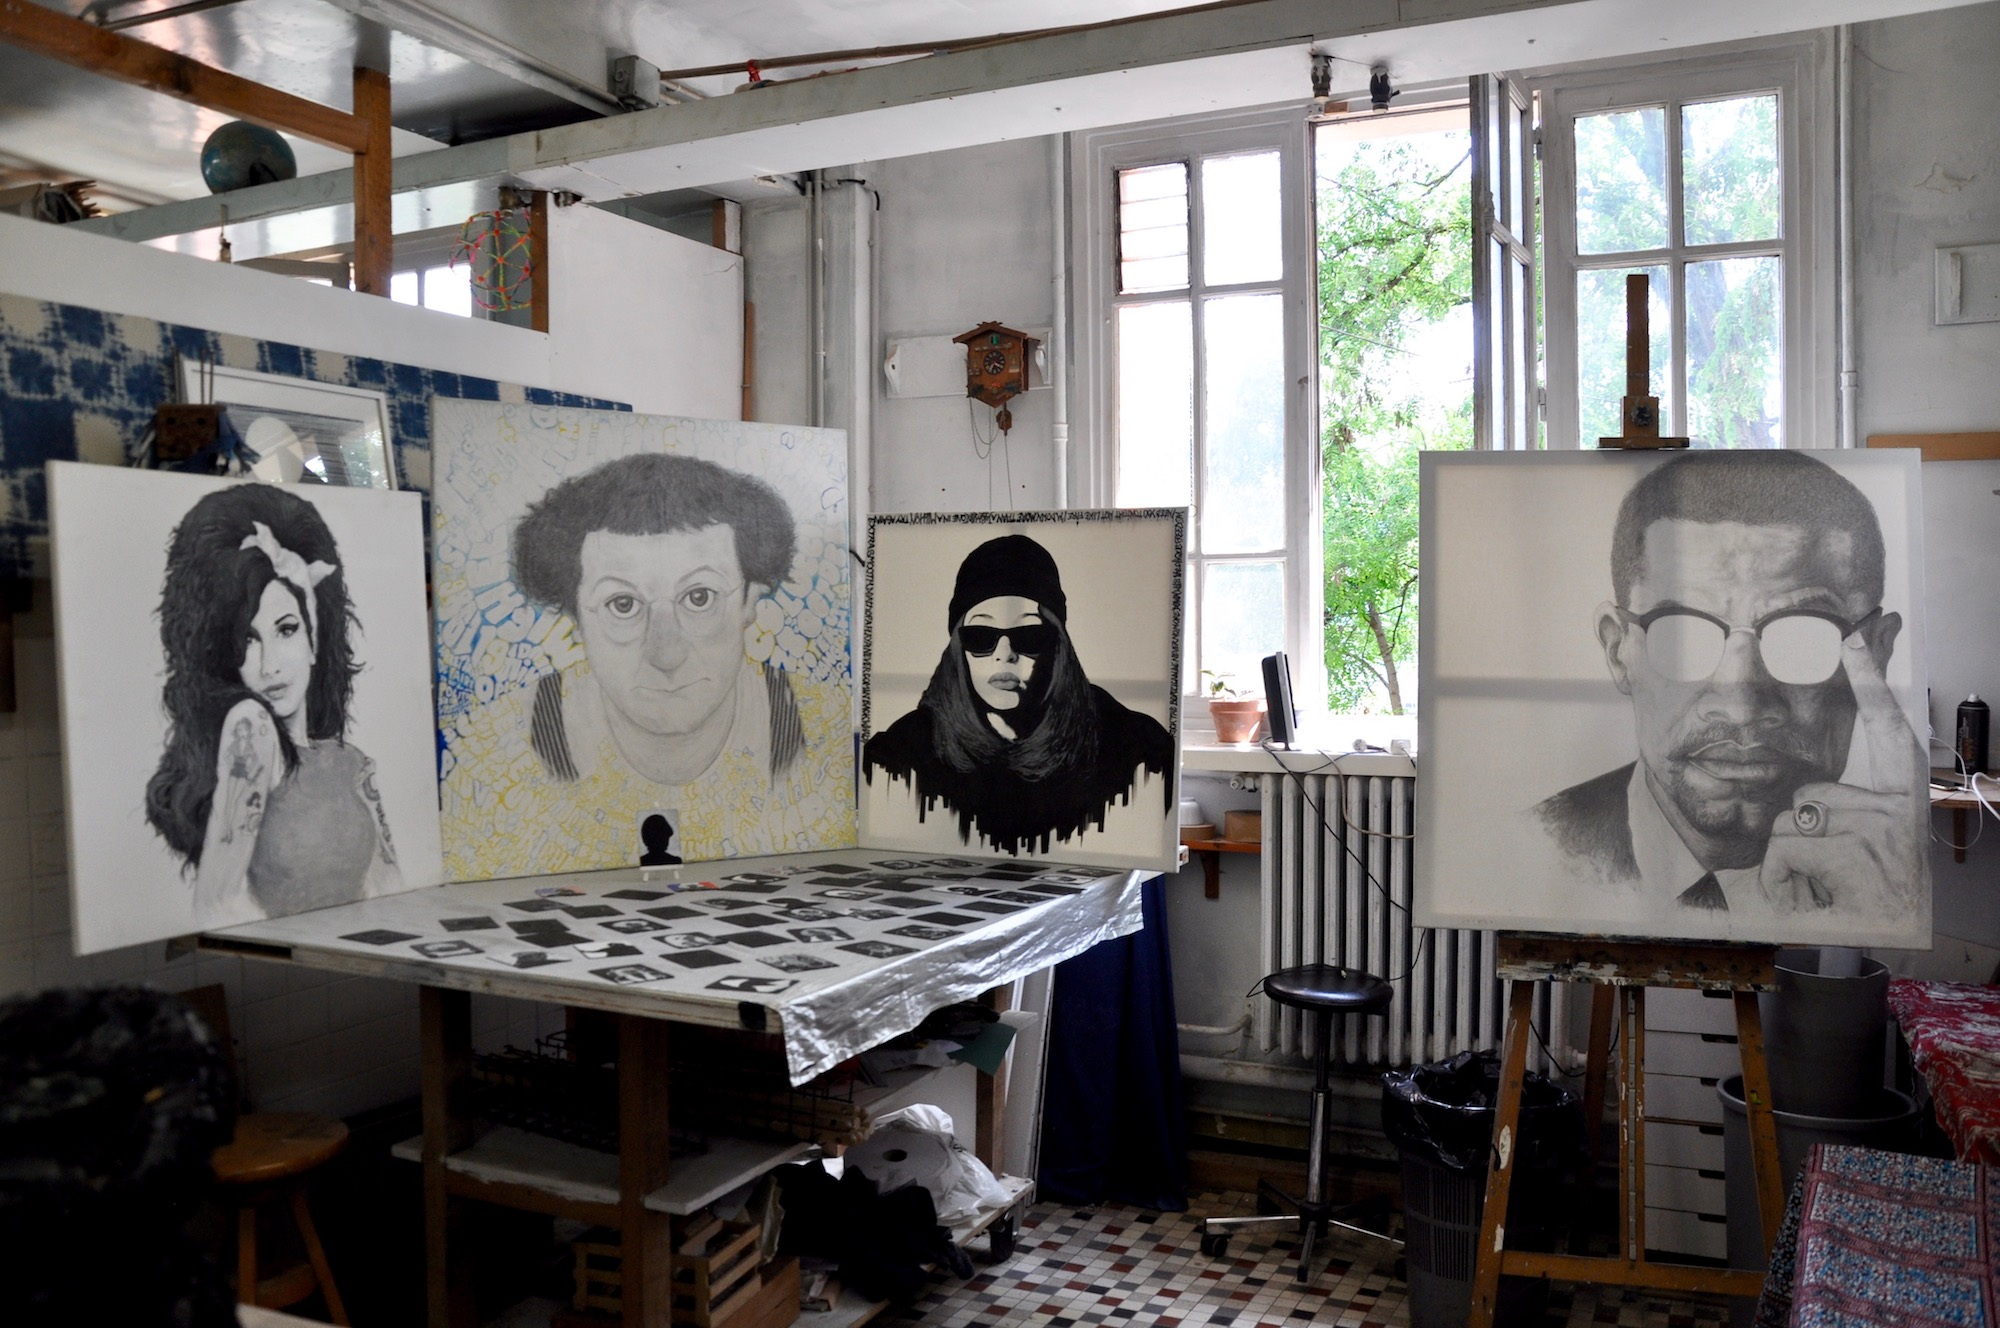 HiP Paris Blog discovers the many artist squats in Paris like the Shakirail with its many artists like those who painted these portraits standing in a studio.